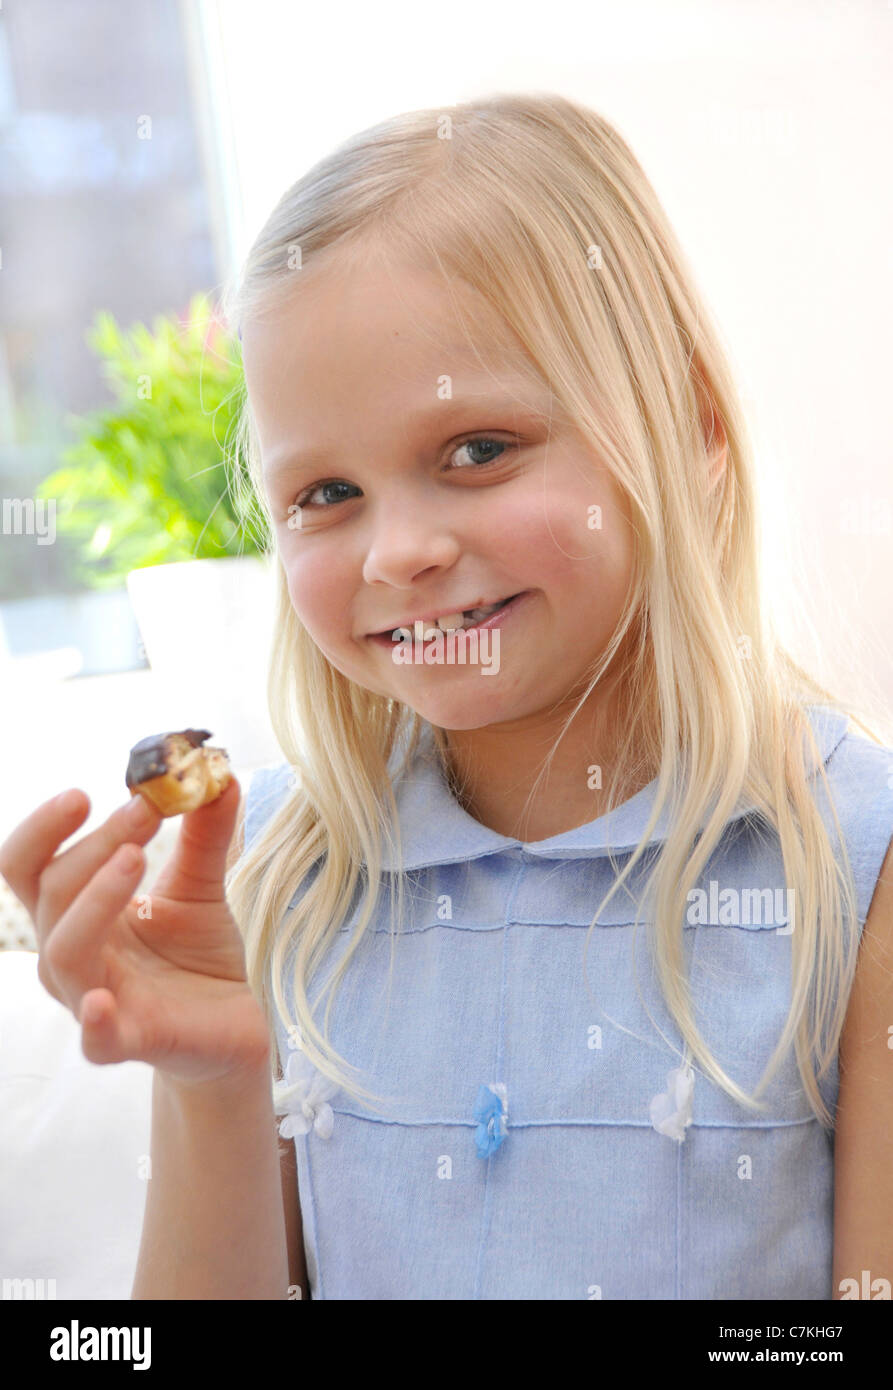 Young girl, 6, with a blue dress and a chocolate donut in her hand - Stock Image